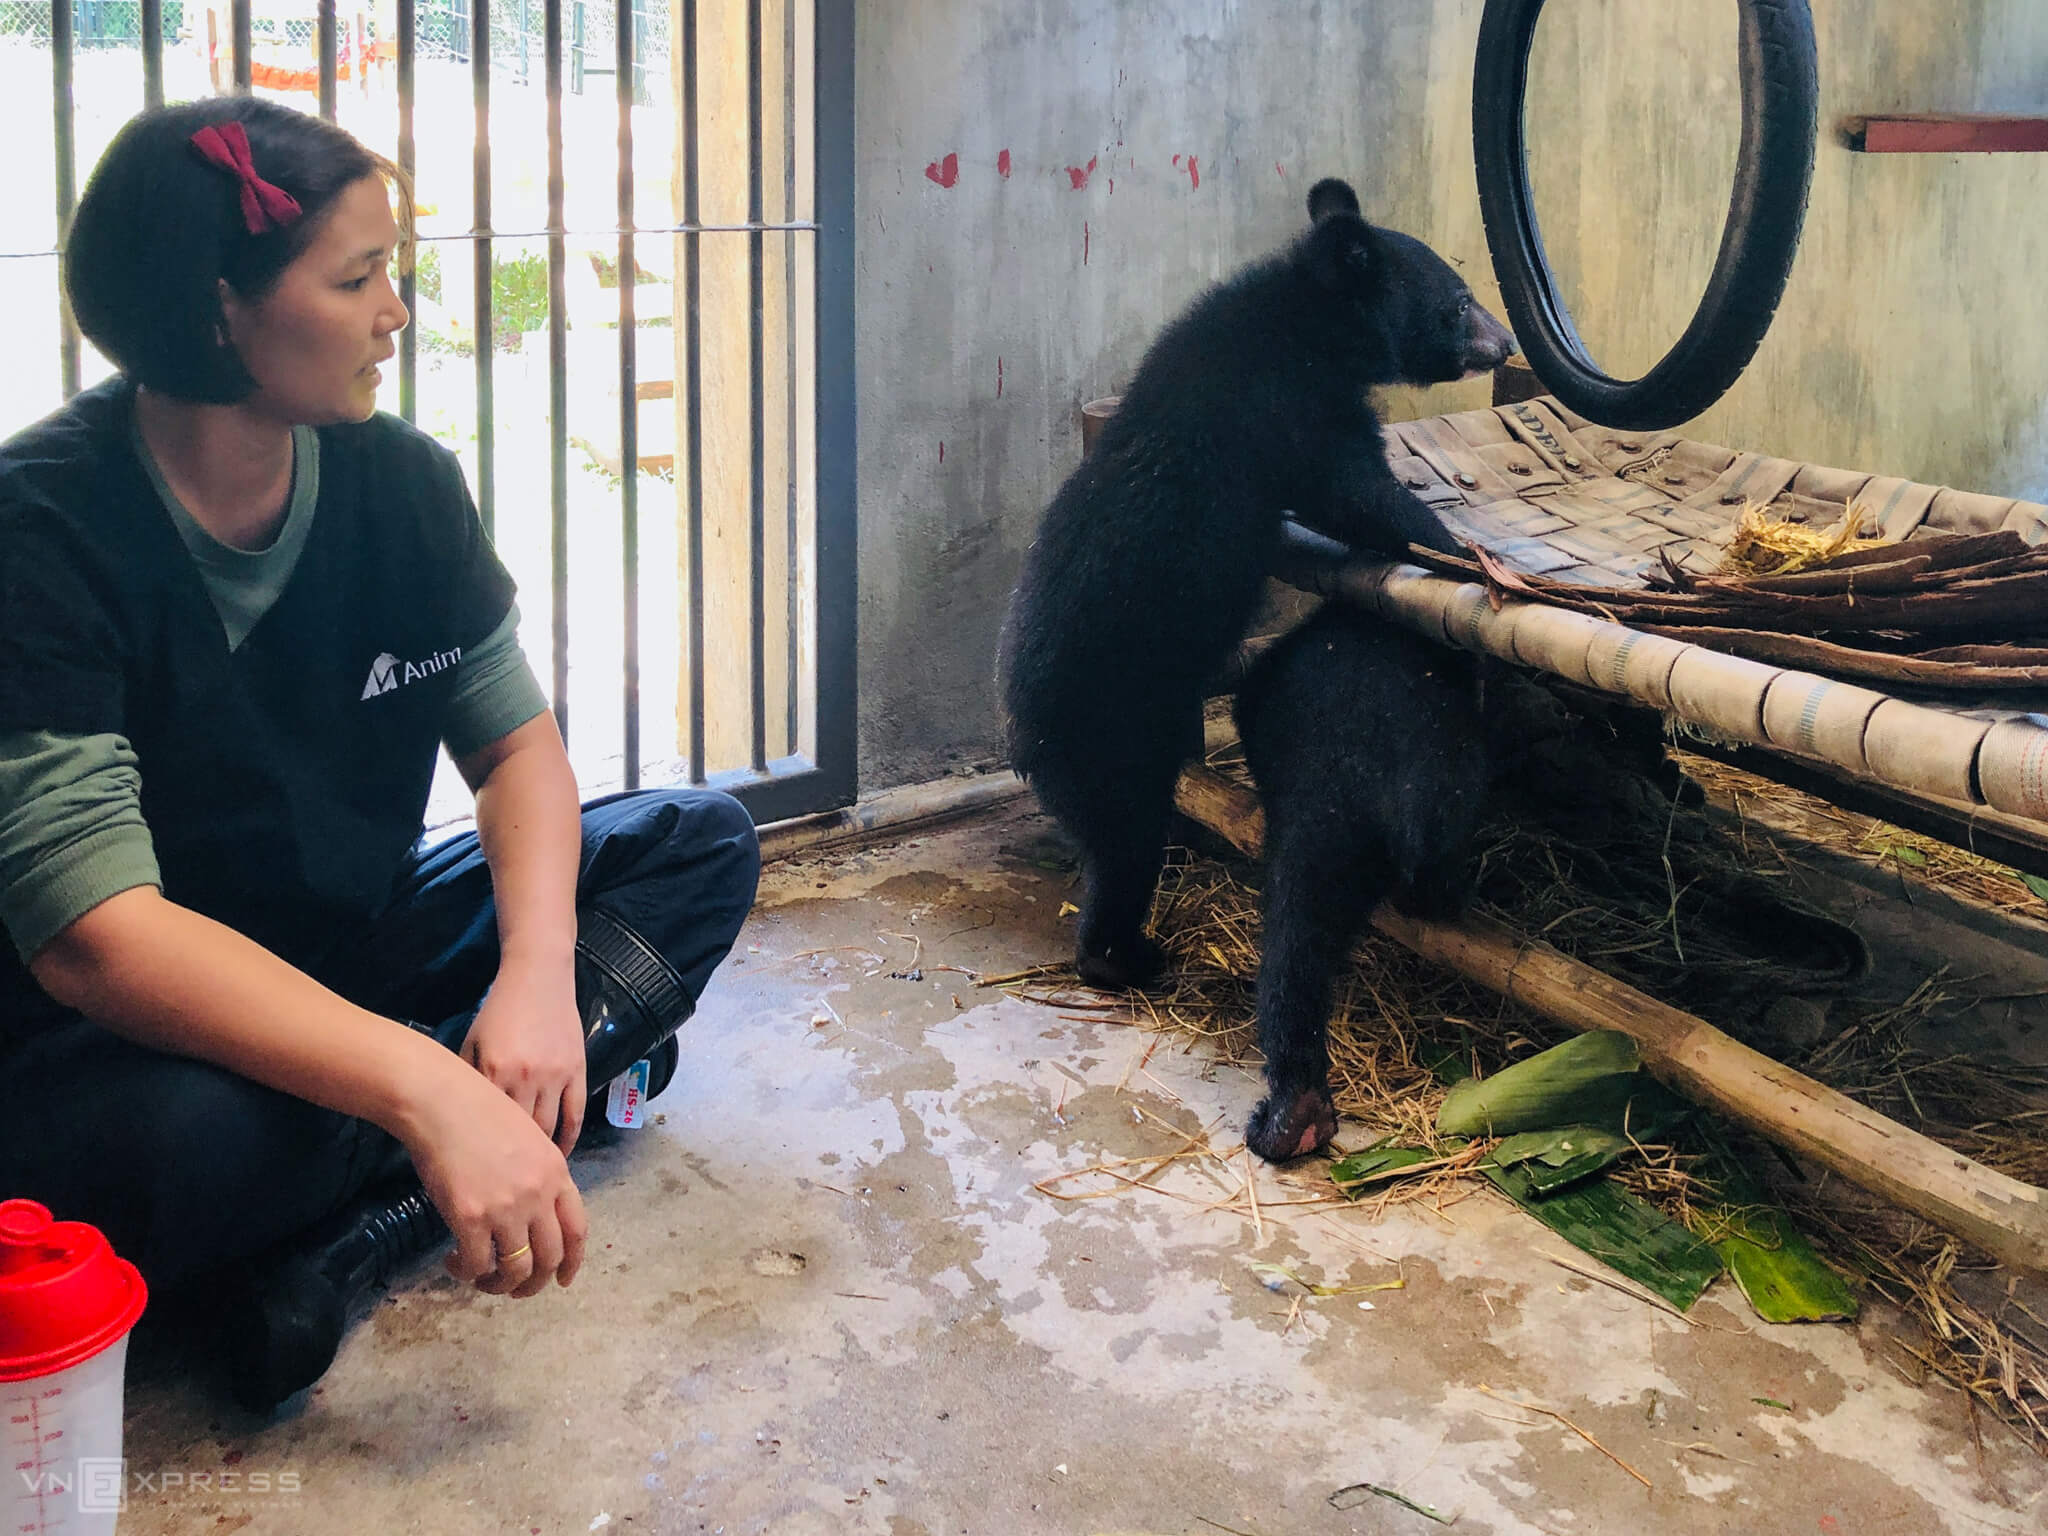 Rescued cubs equipped with necessities at Vietnam center